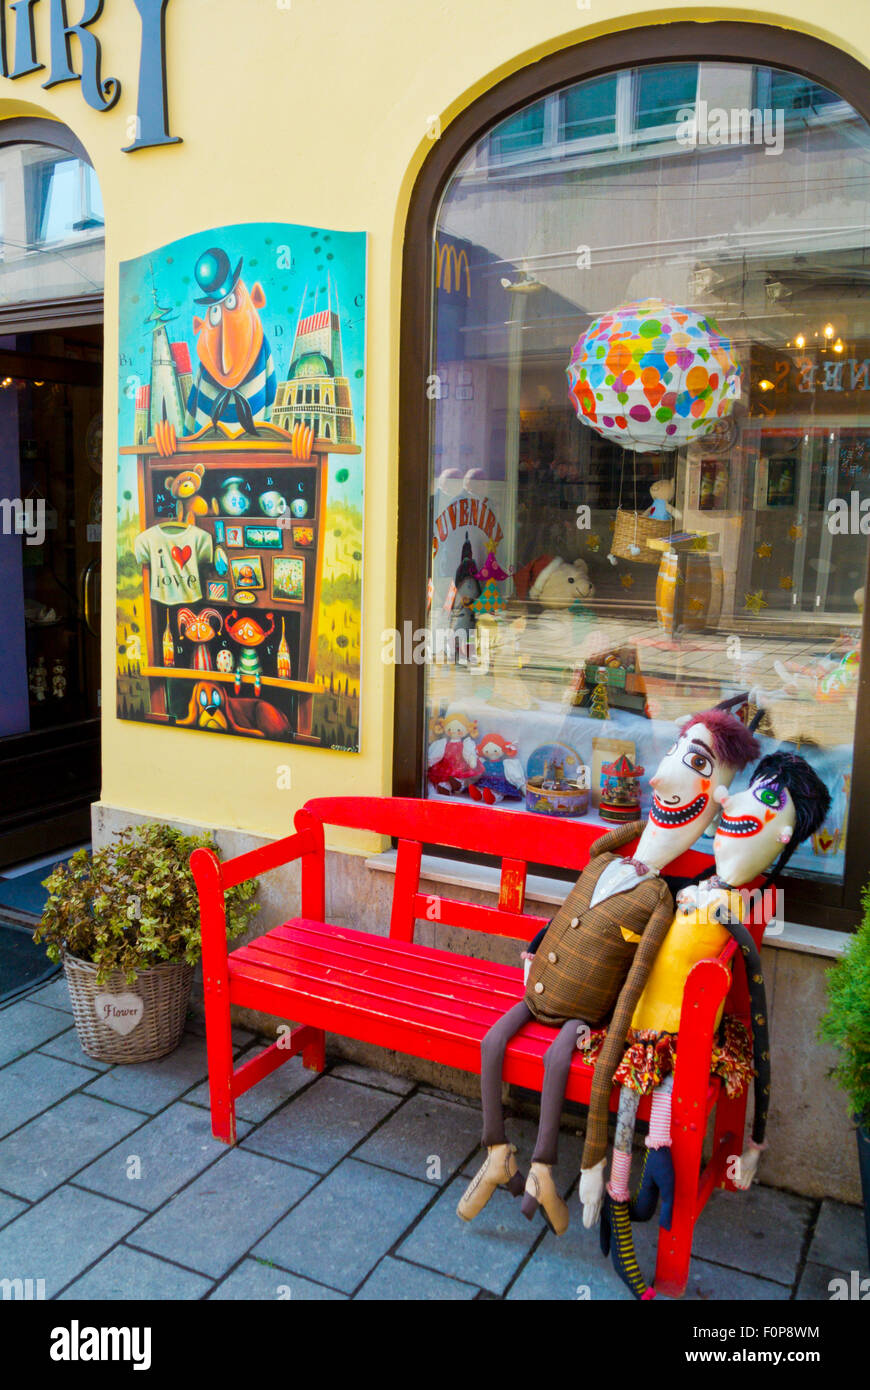 Shop exterior with the dolls in front of many shops around Old town, Bratislava, Slovakia, Europe - Stock Image